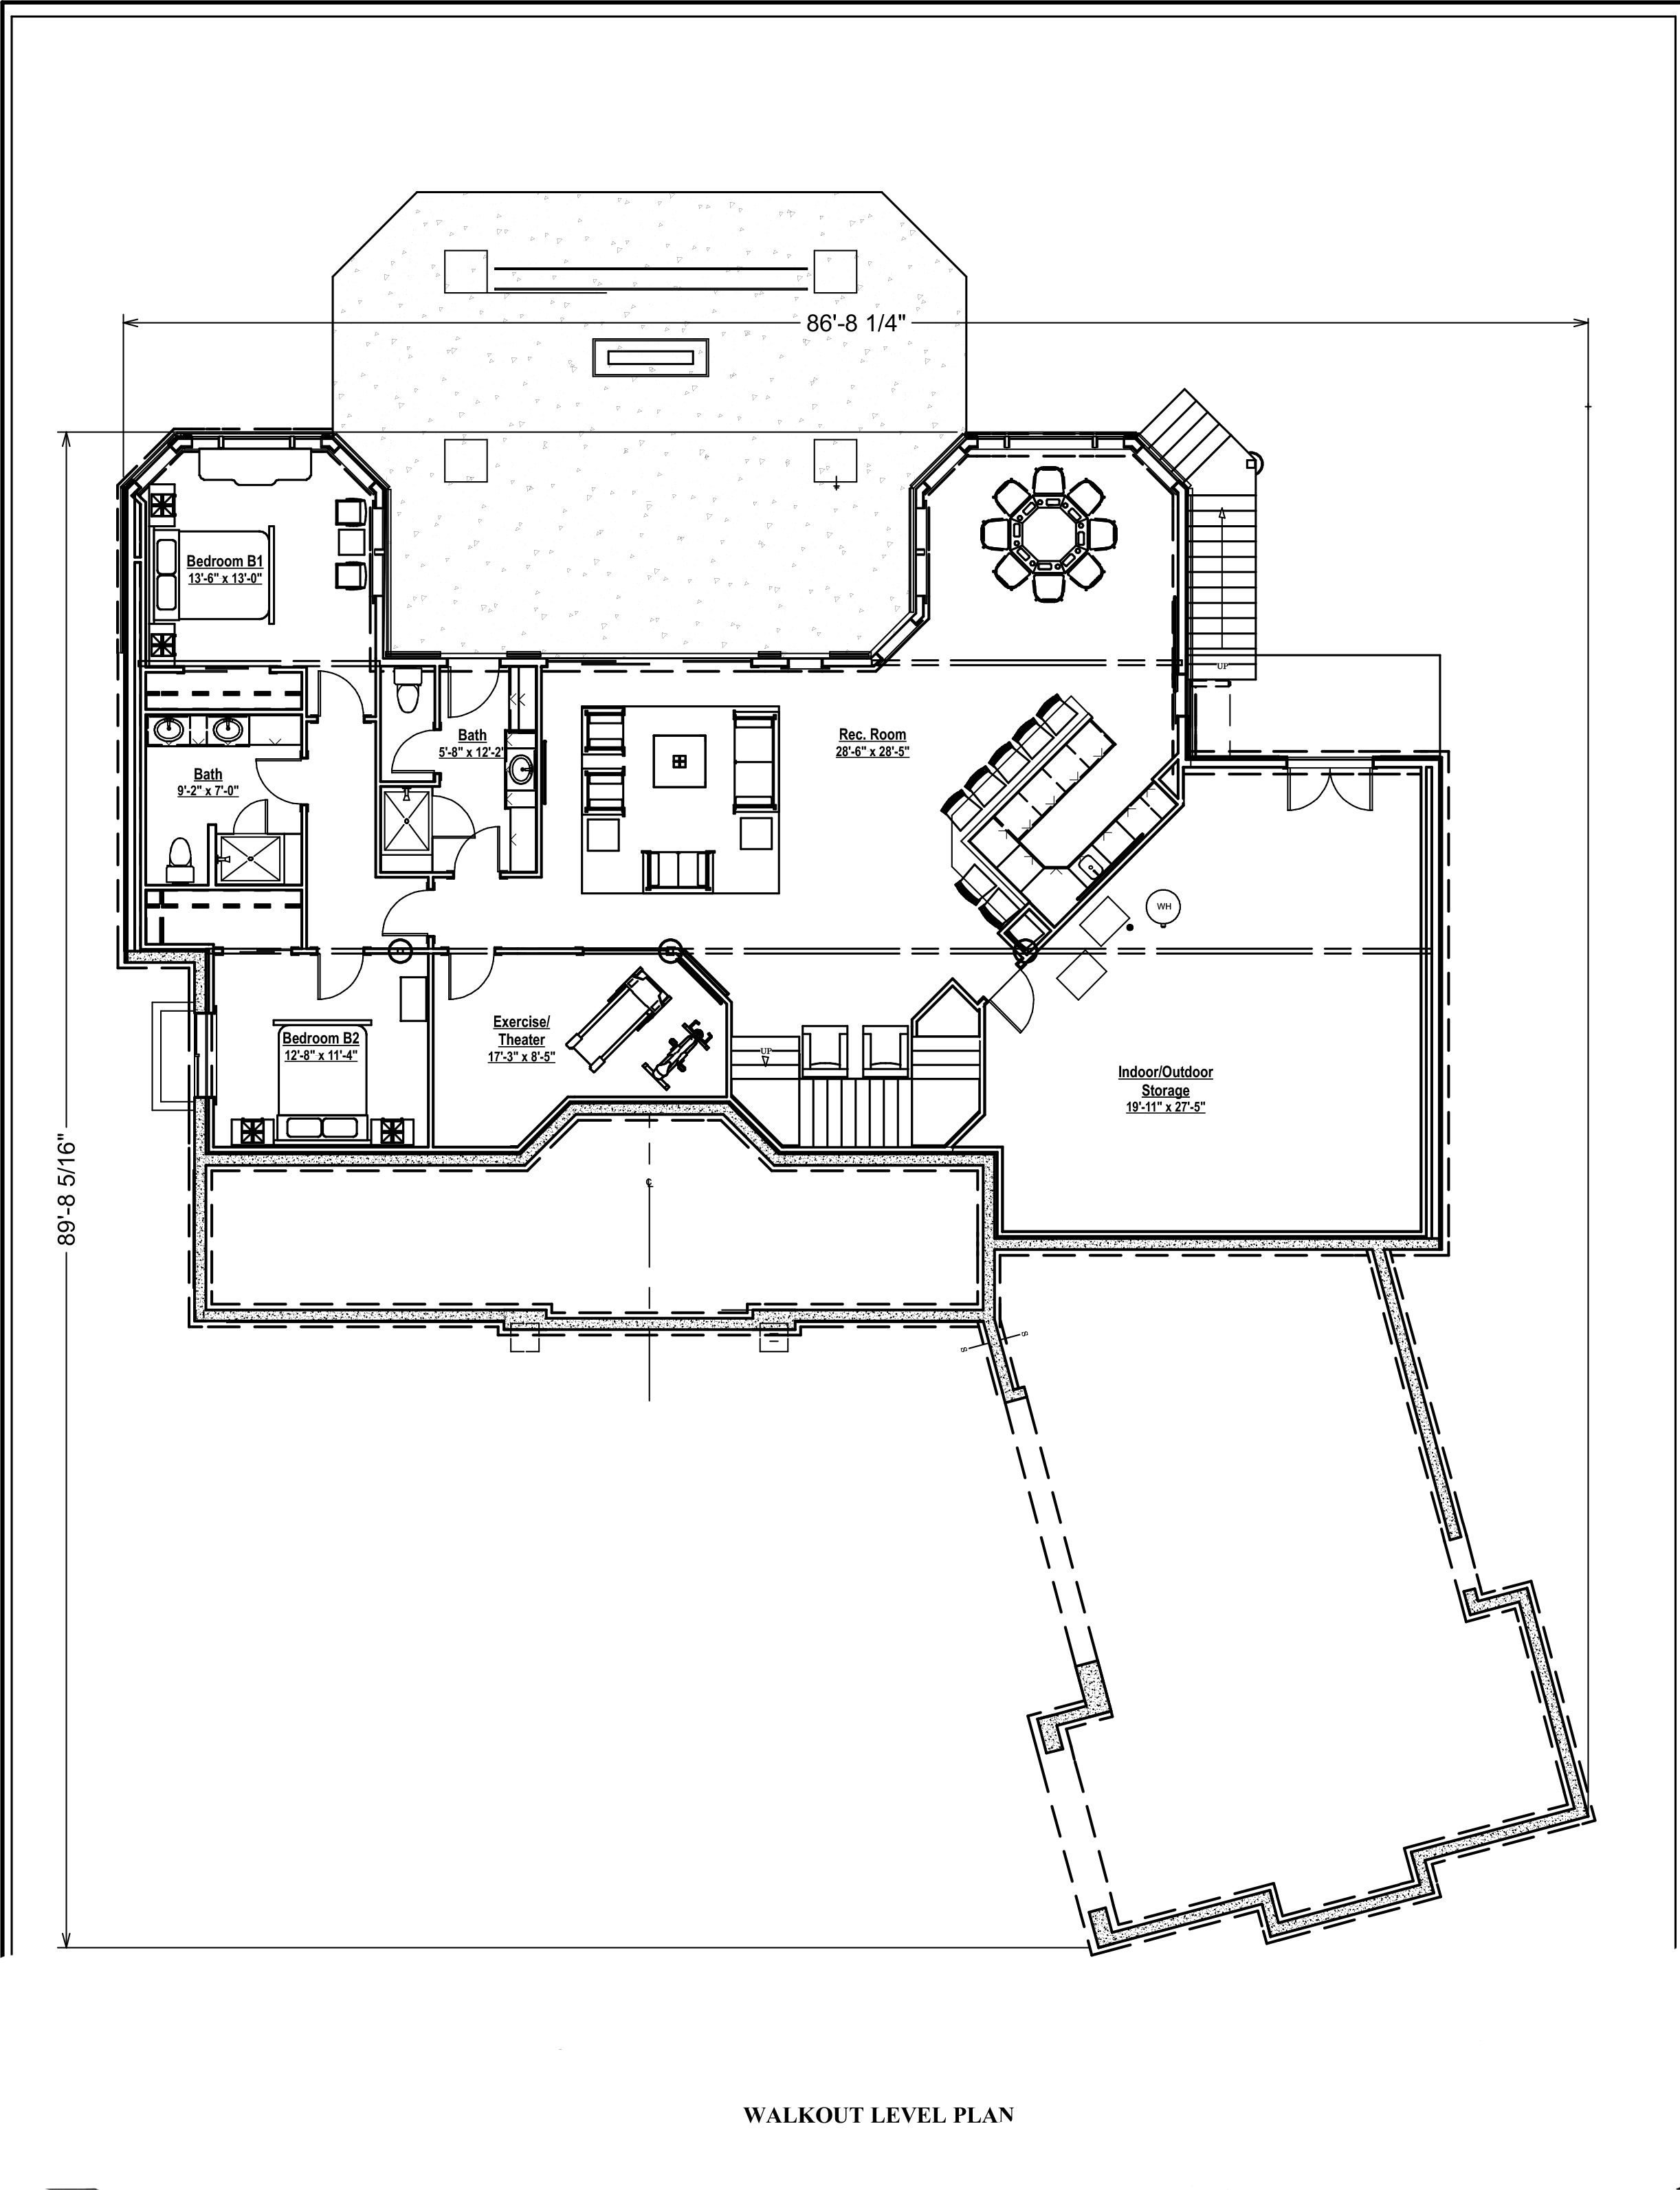 2 Bedroom Transitional Ranch House Plan 2605 Sq Ft, 2.5